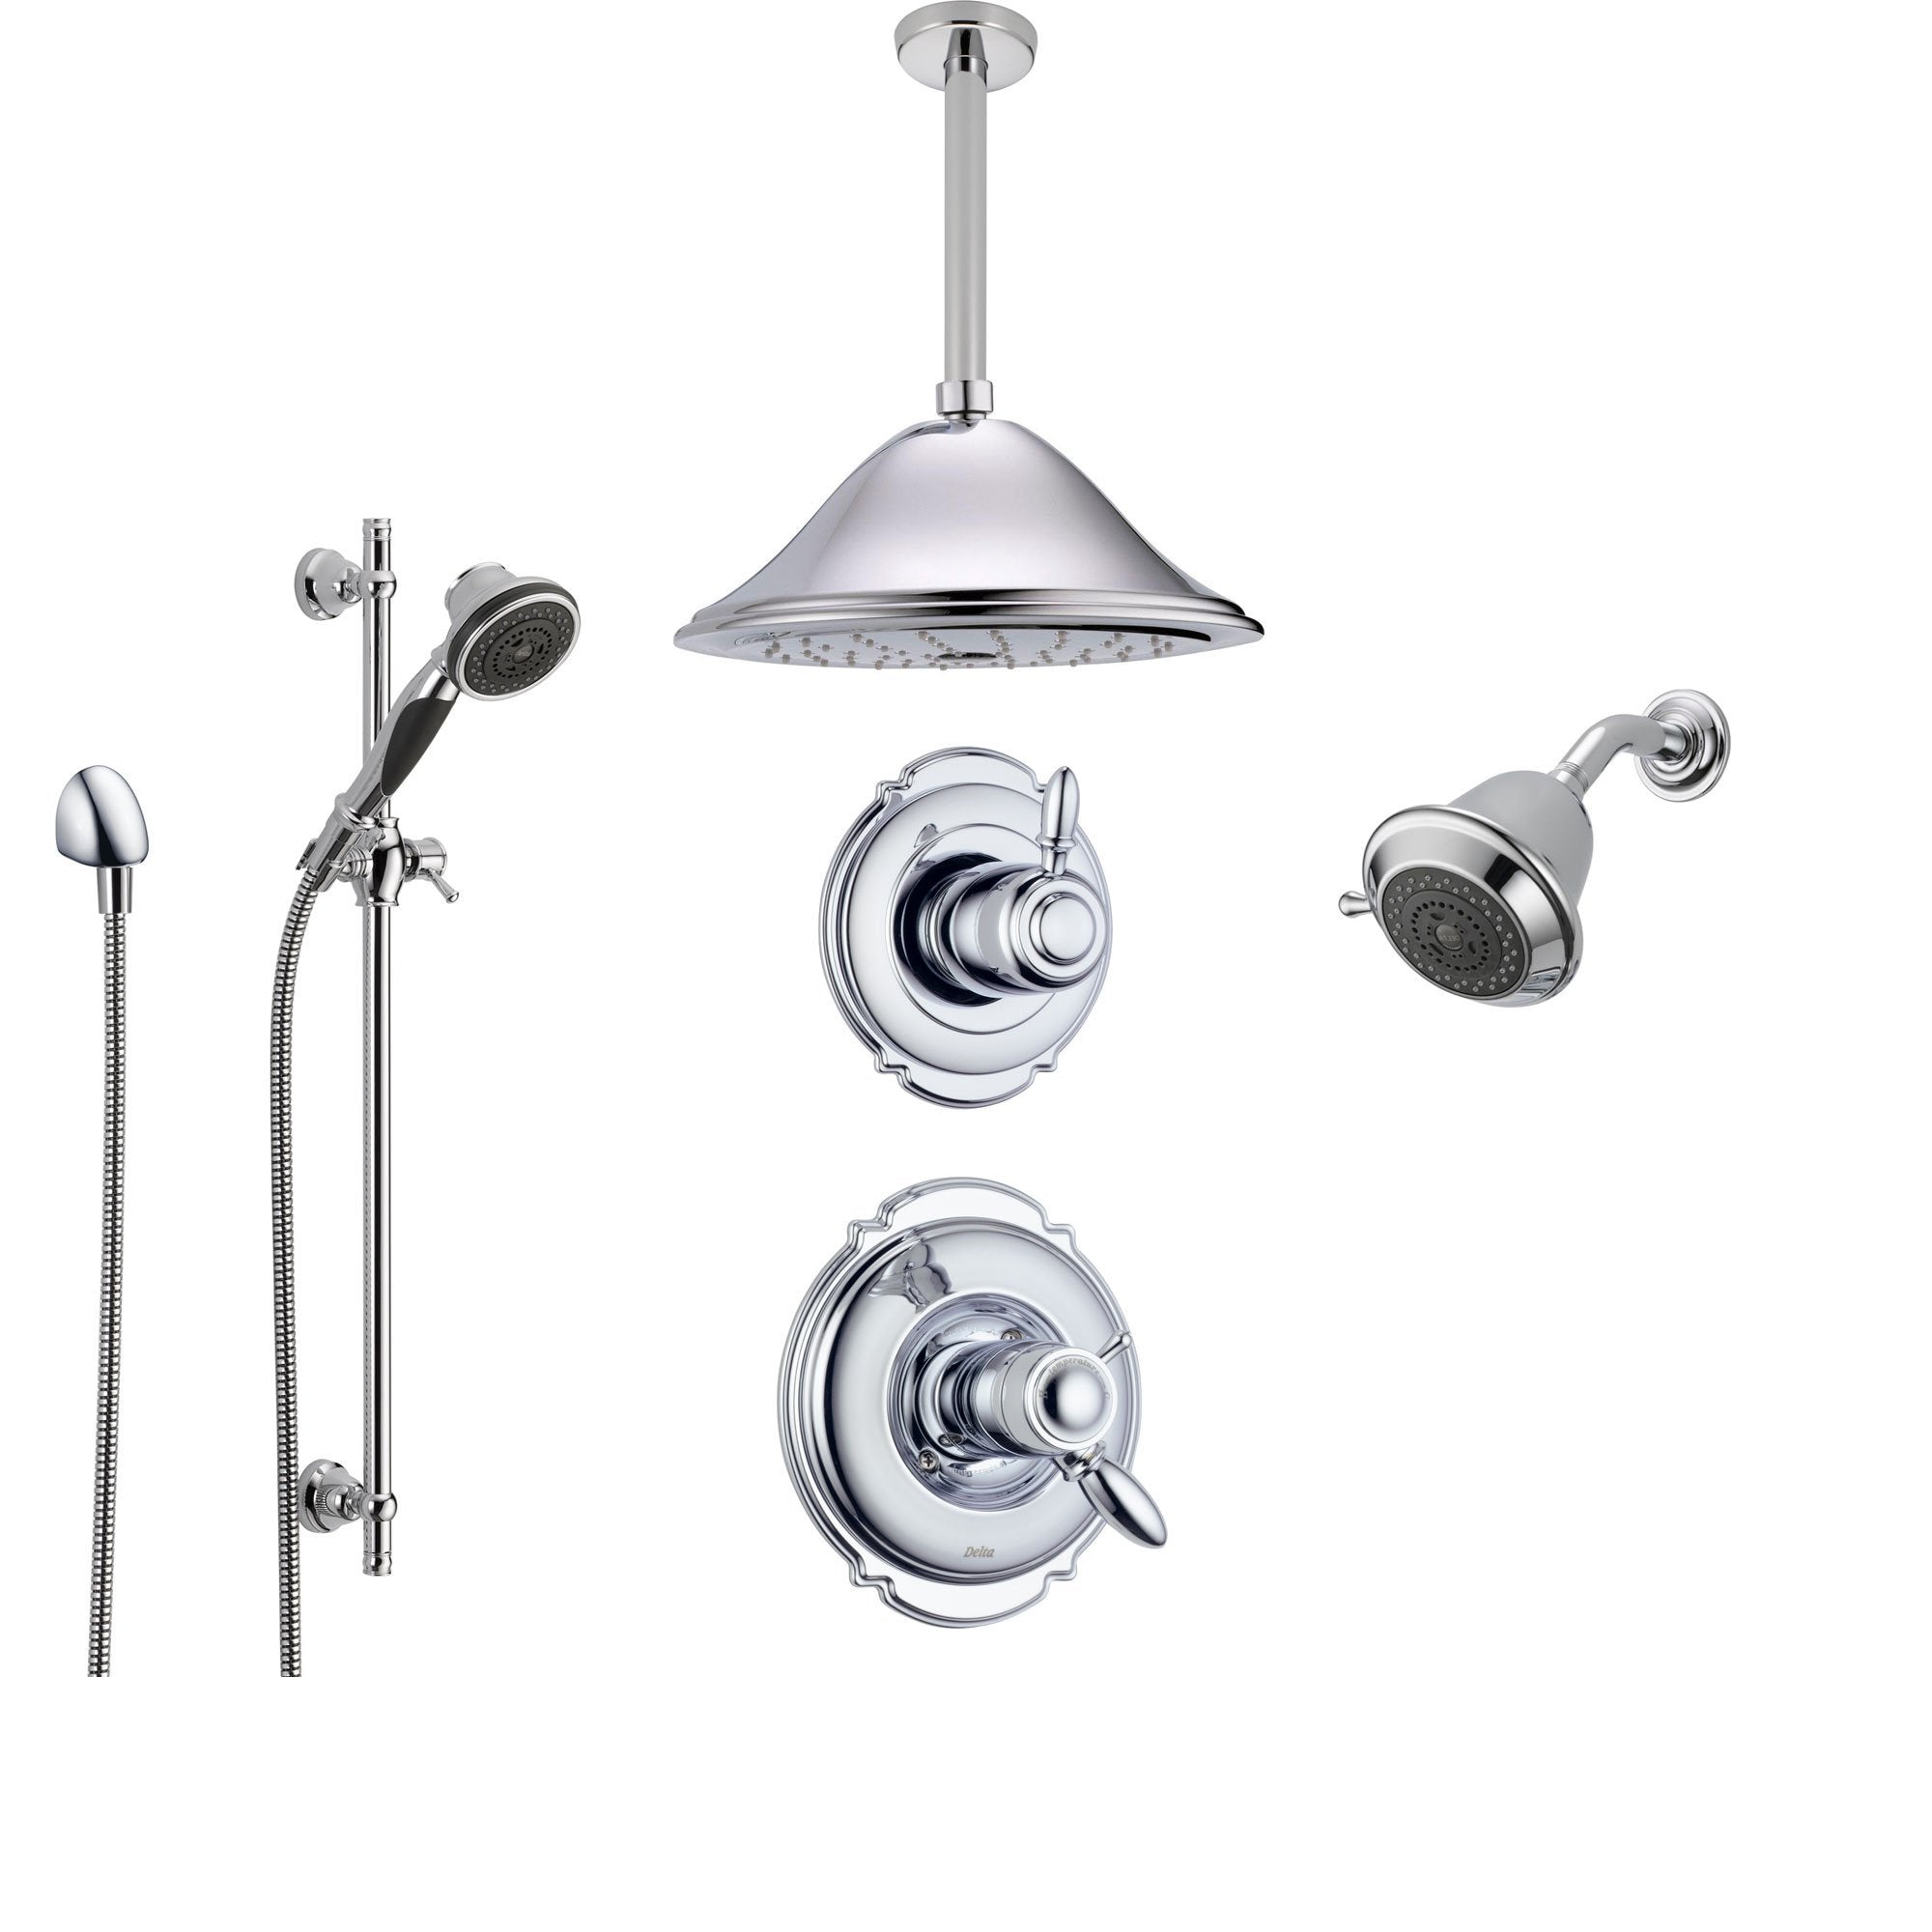 delta victorian chrome shower system with shower handle 6setting diverter large